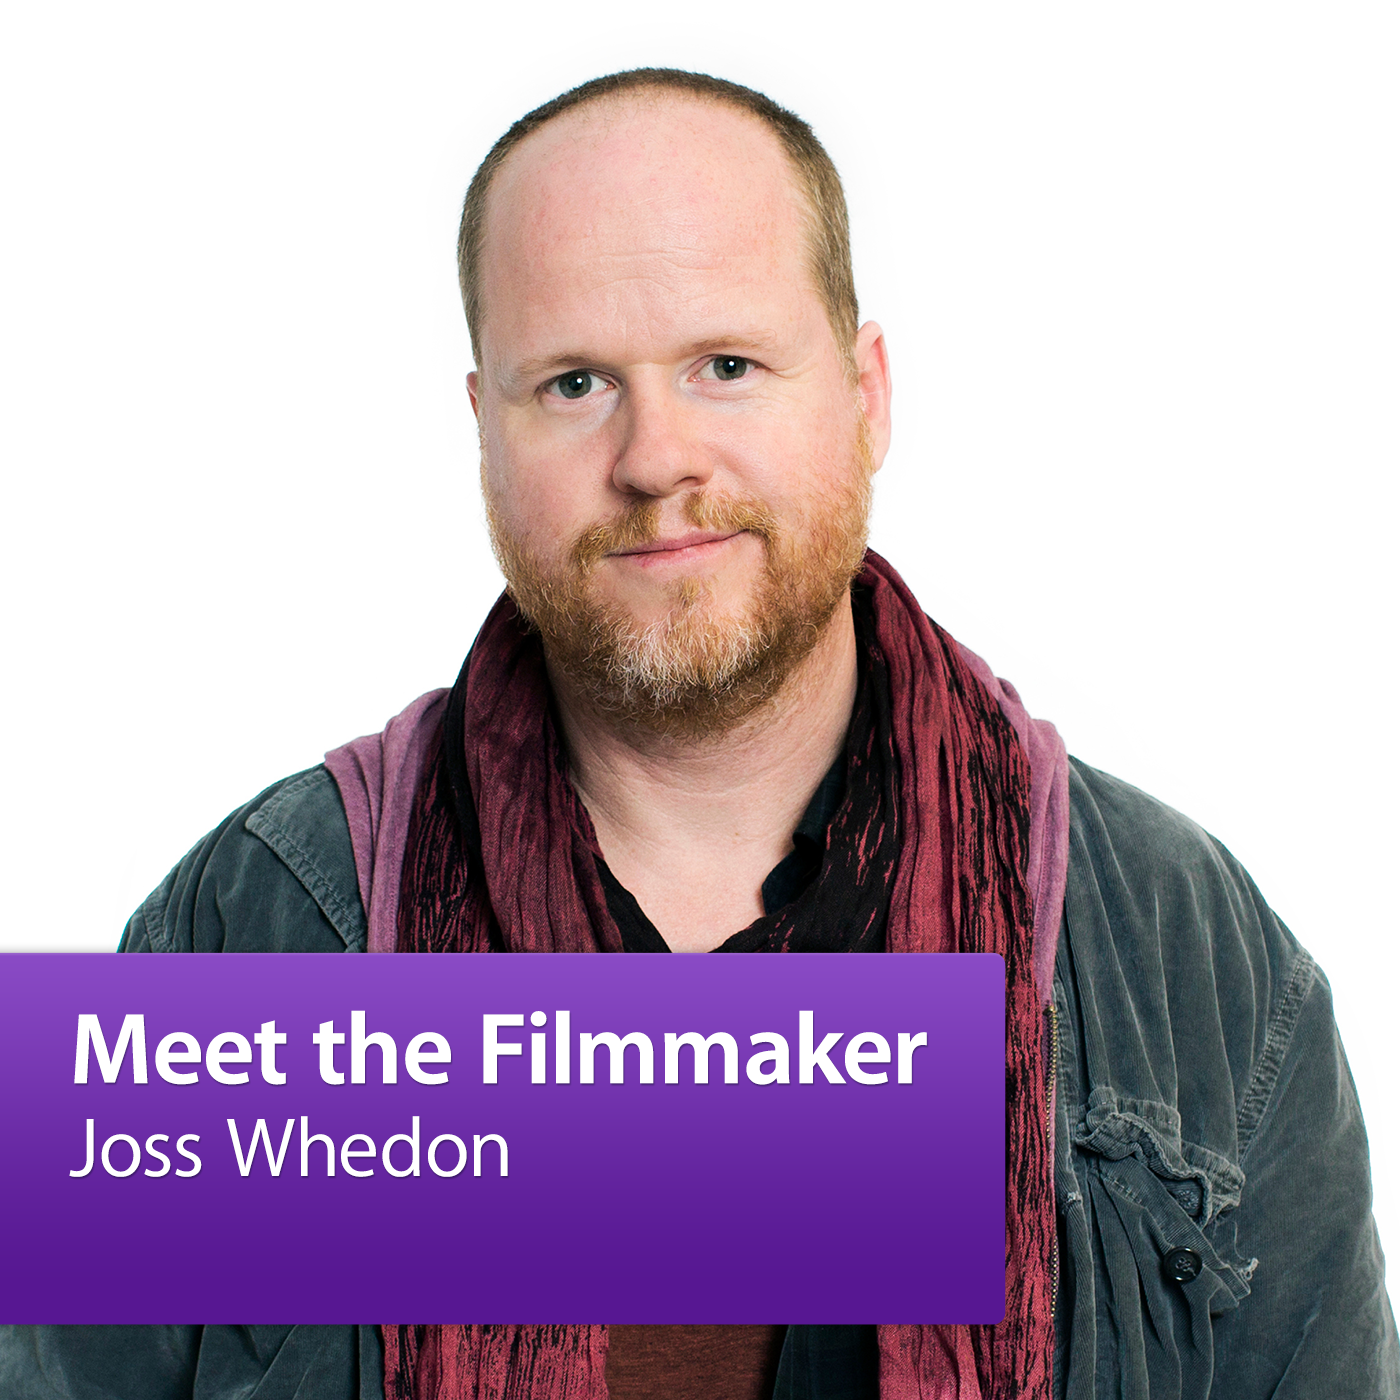 Joss Whedon: Meet the Filmmaker